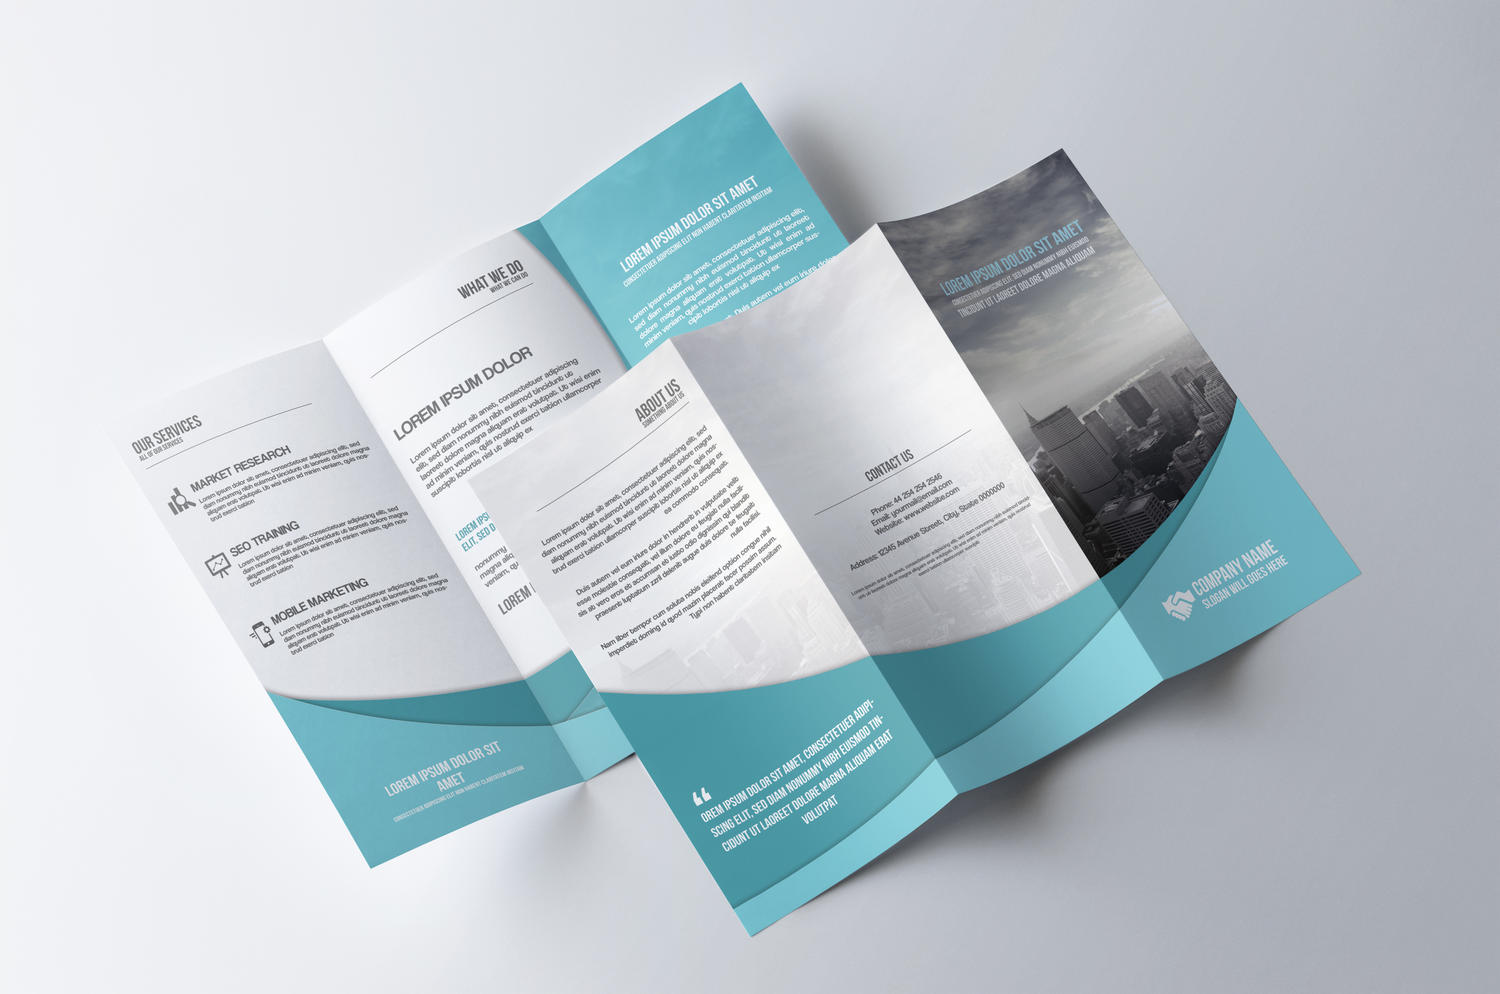 design studio brochure - professional tri fold brochure design by creativeshop7 on